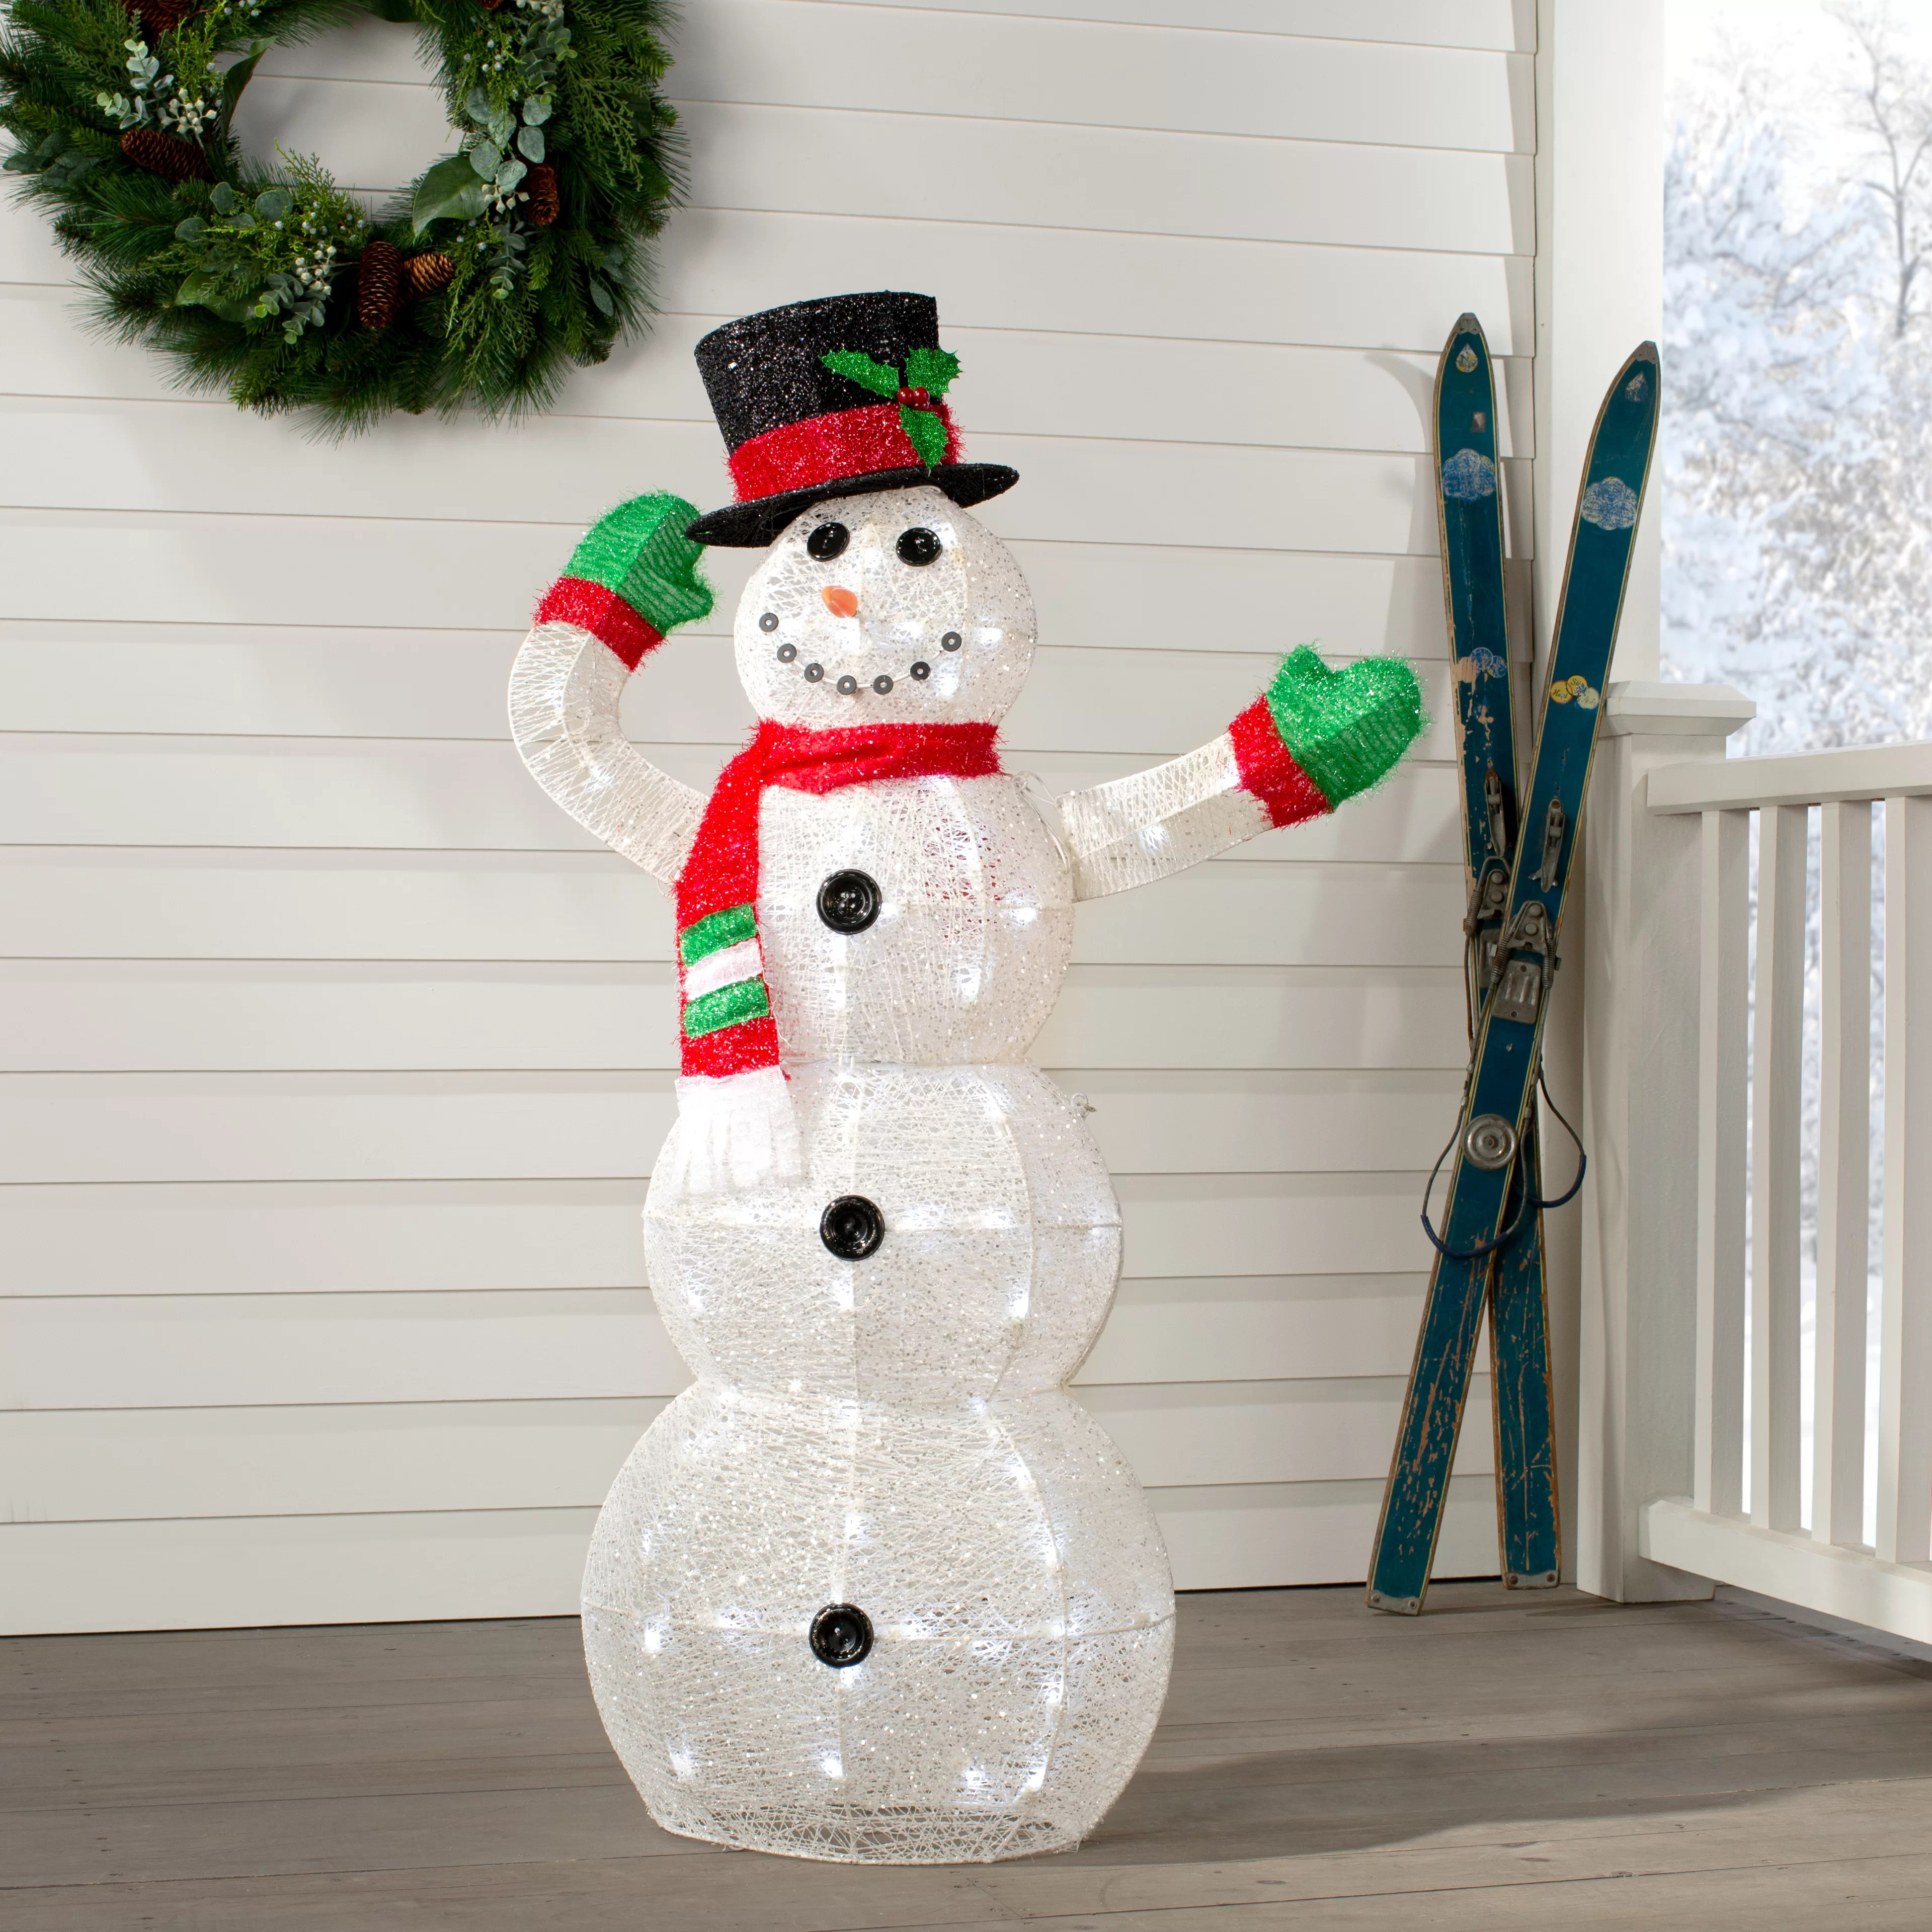 The Holiday Aisle Crystal Snowman Christmas Indoor Outdoor Decoration Lighted Display Reviews Wayfair